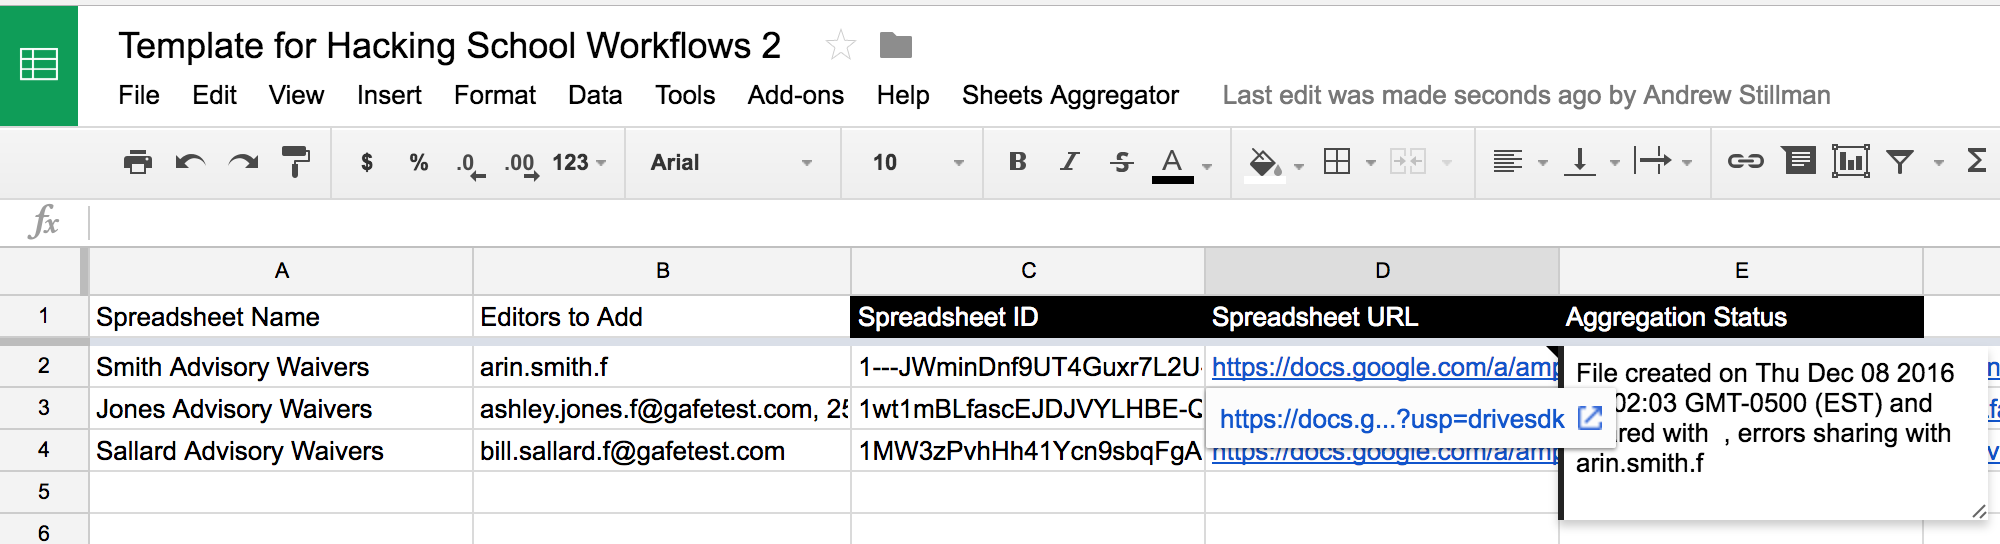 GSheetsUtils Tutorial: Writing and/or appending data to a sheet